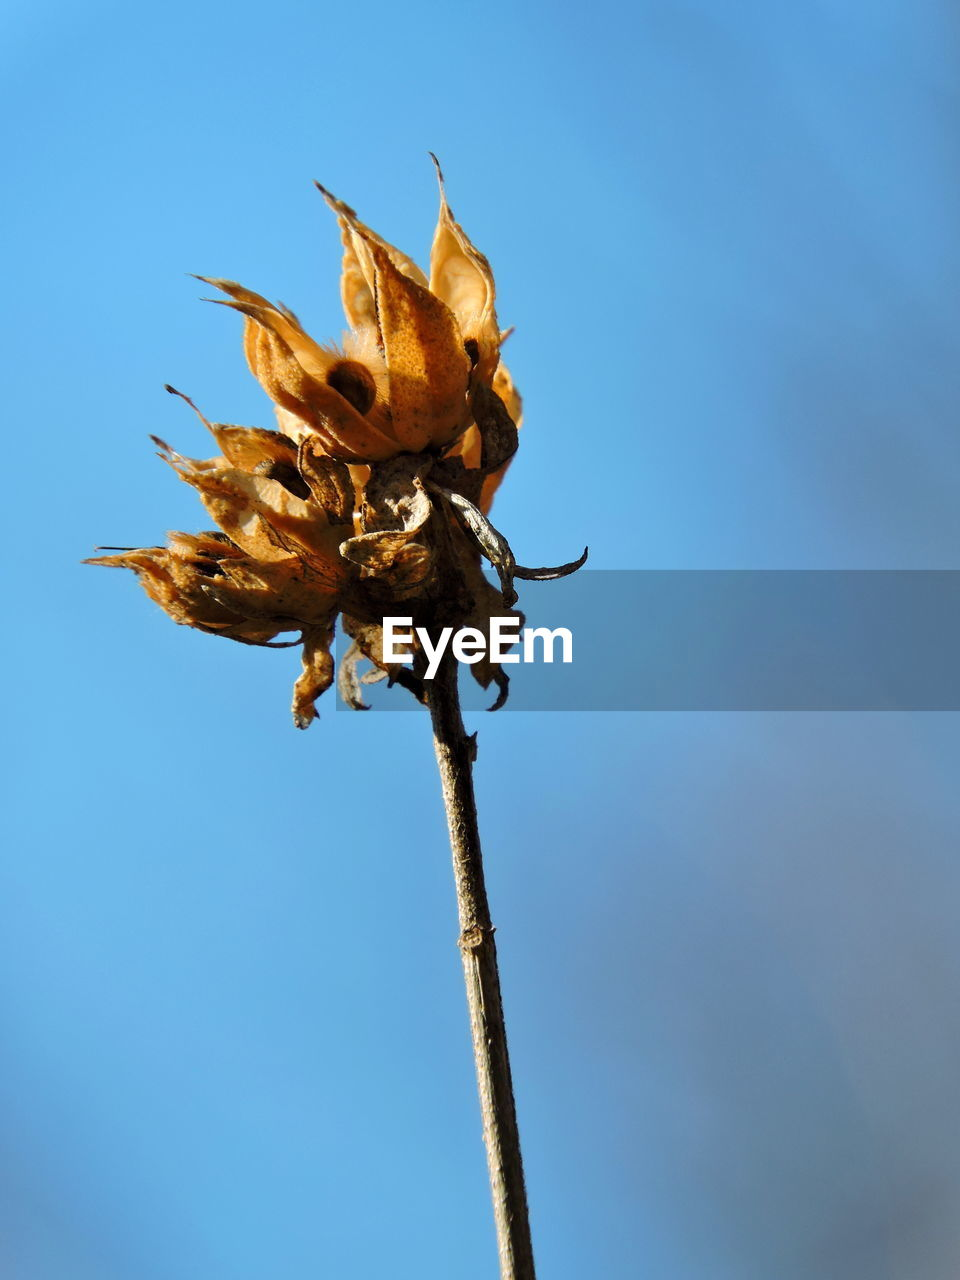 plant, nature, vulnerability, fragility, flower, sky, flowering plant, beauty in nature, dry, no people, day, close-up, blue, low angle view, clear sky, sunlight, plant stem, outdoors, growth, wilted plant, flower head, dead plant, sepal, dried